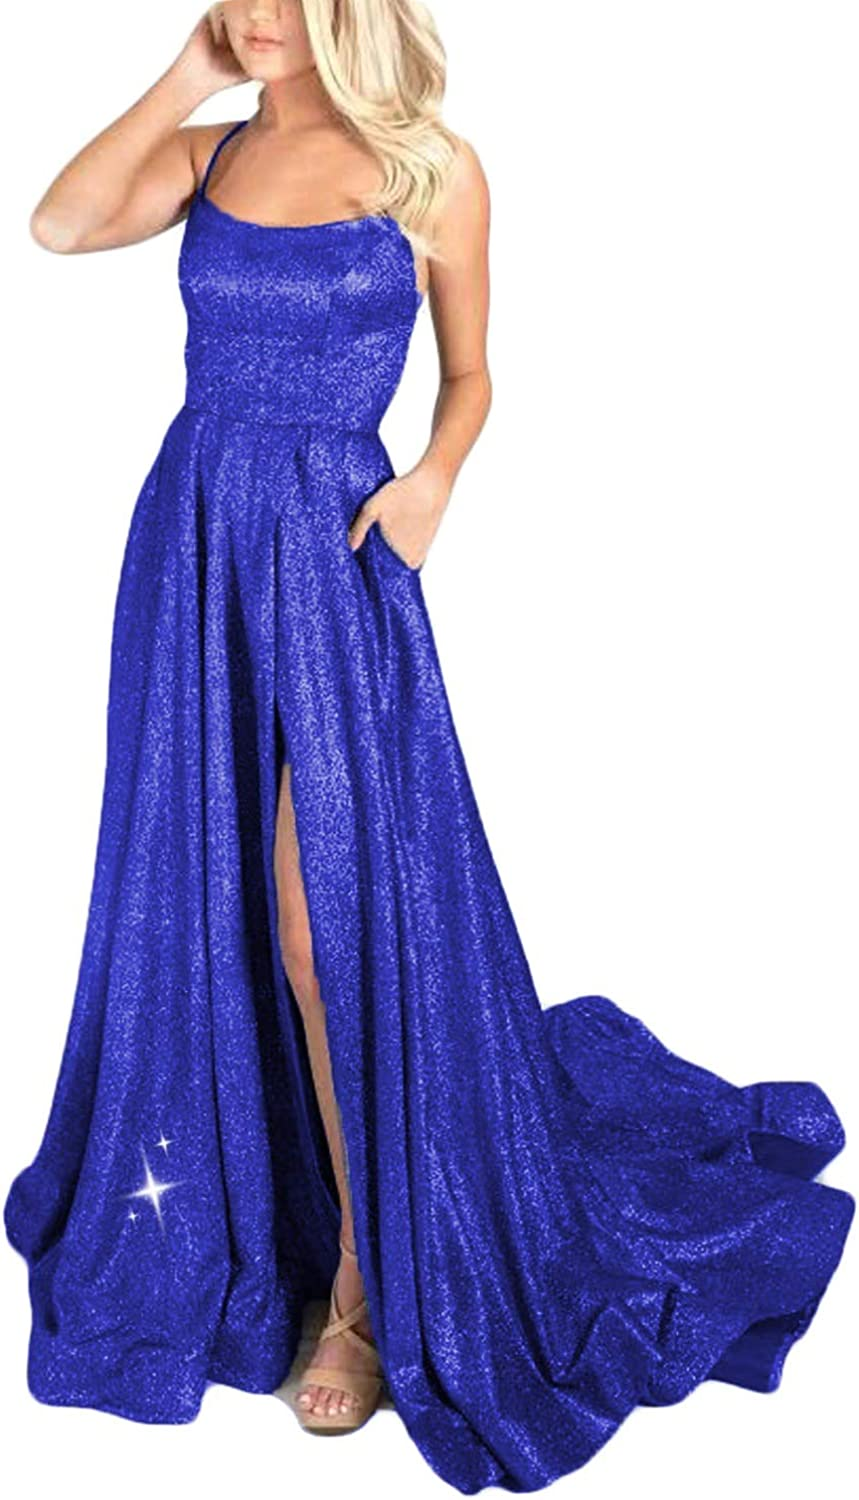 Shindress Women Tulsa Mall Glitter Prom Dresses Pockets with Long 2020 67% OFF of fixed price Side